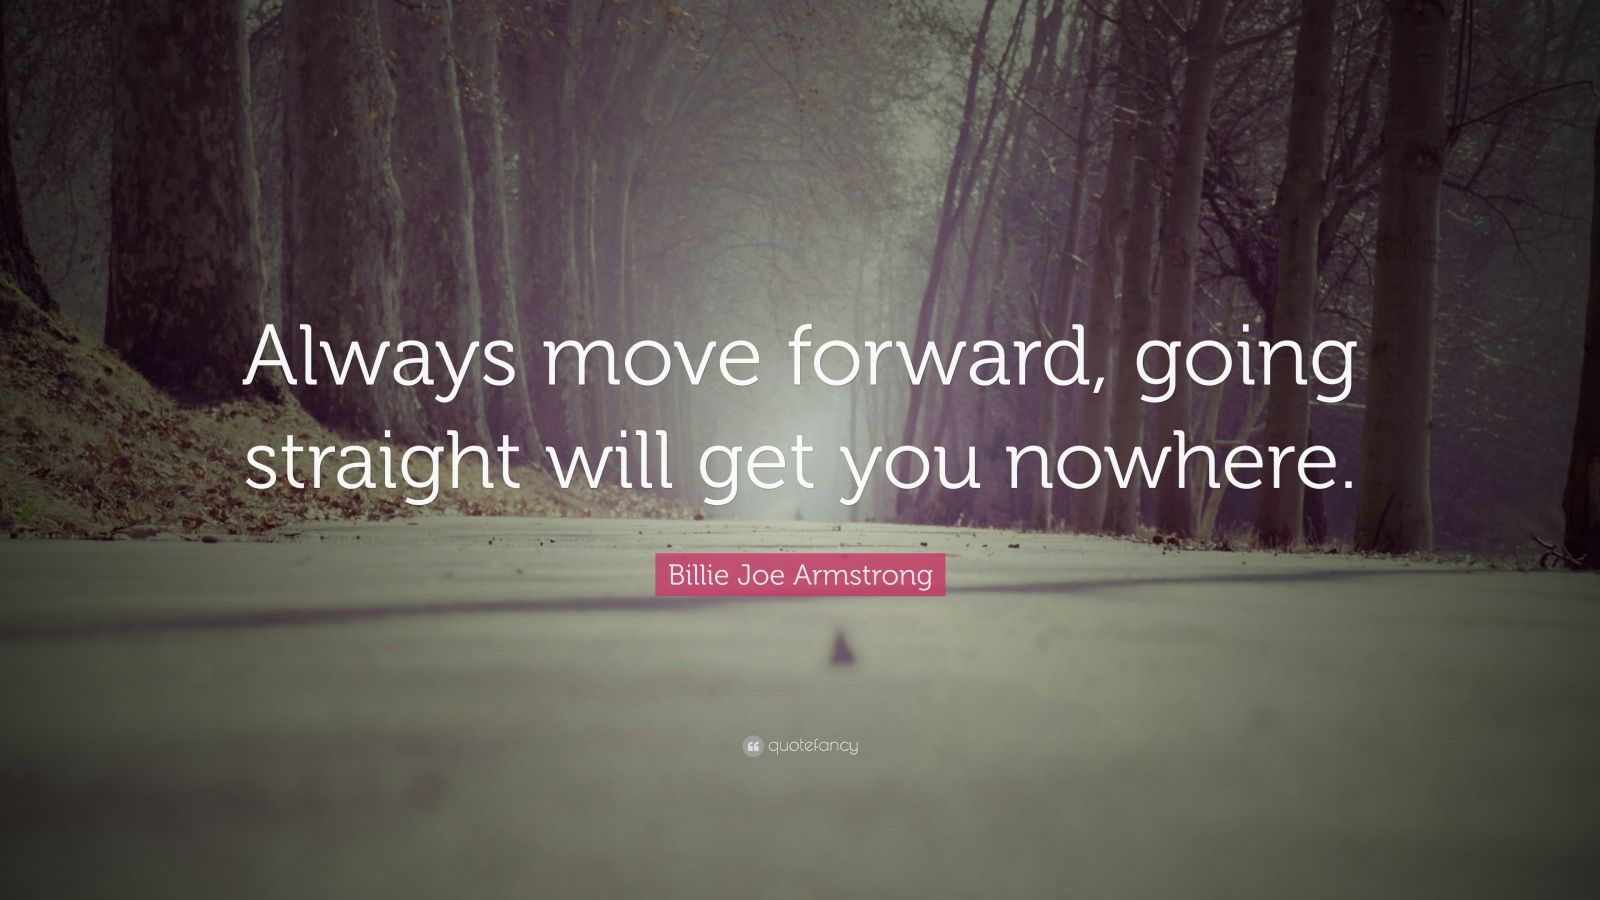 """Billie Joe Armstrong Quote: """"Always move forward, going straight will get you nowhere."""""""